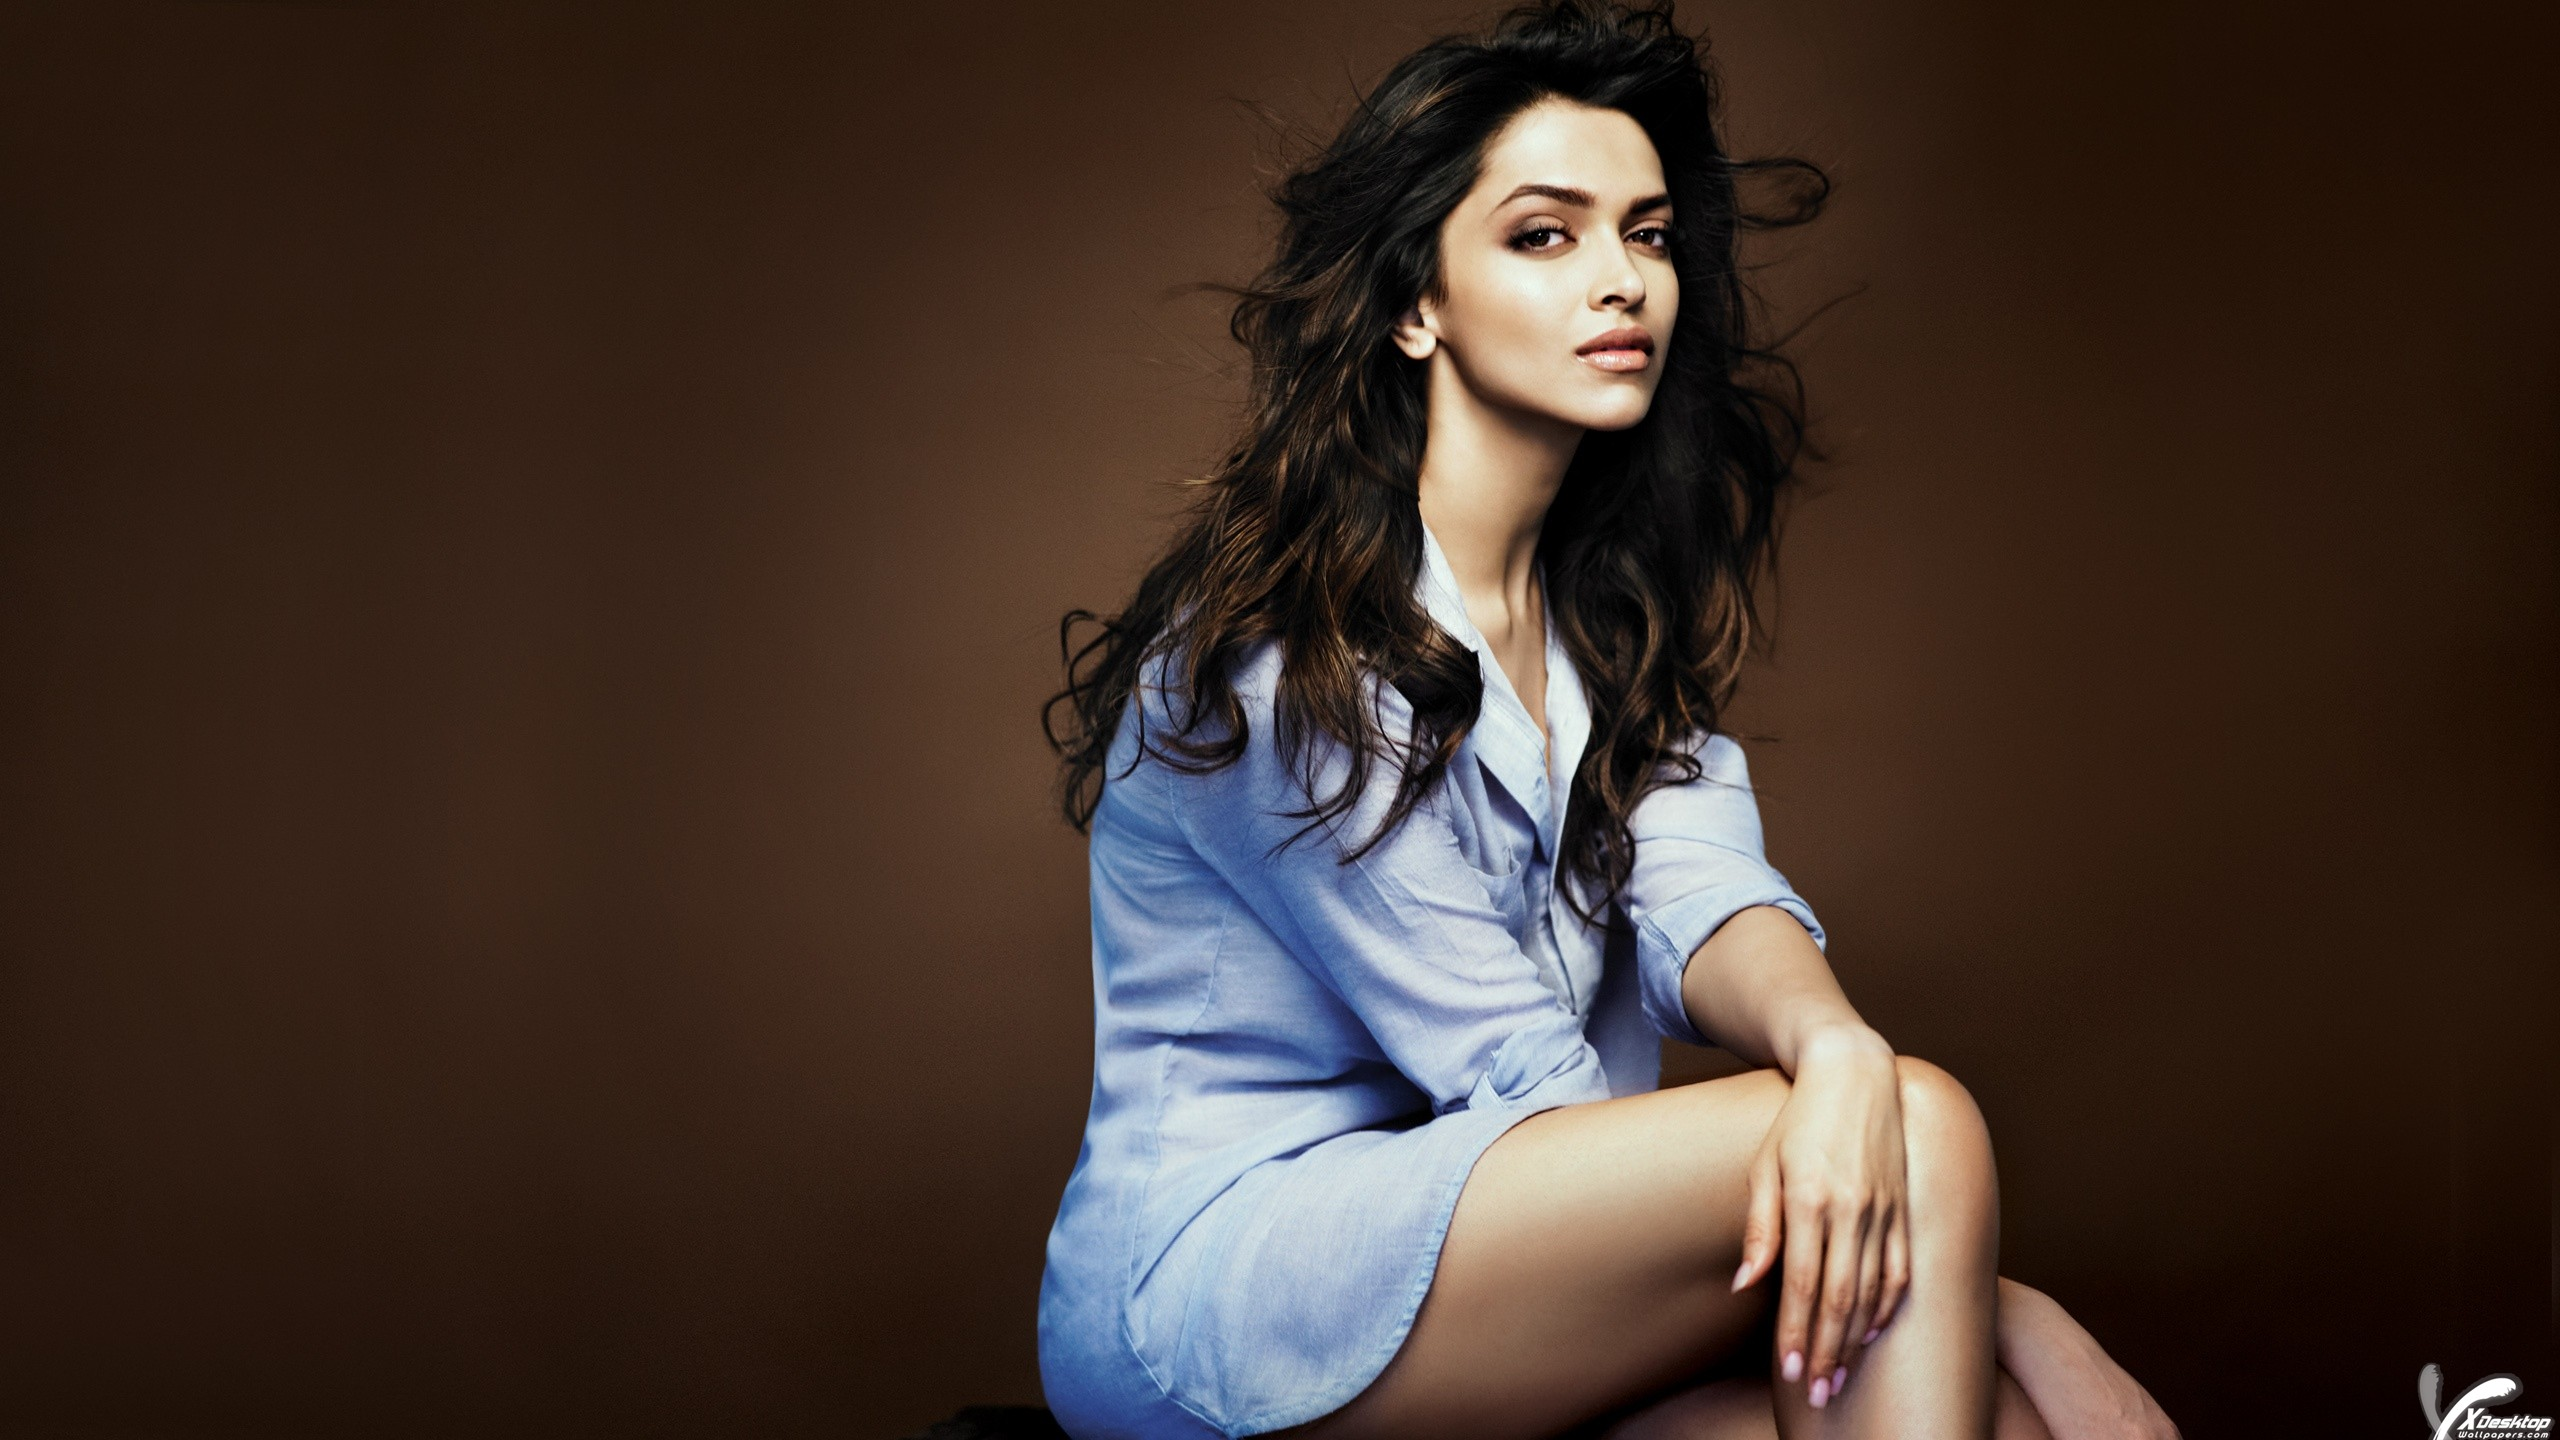 deepika padukone wallpapers, photos & images in hd